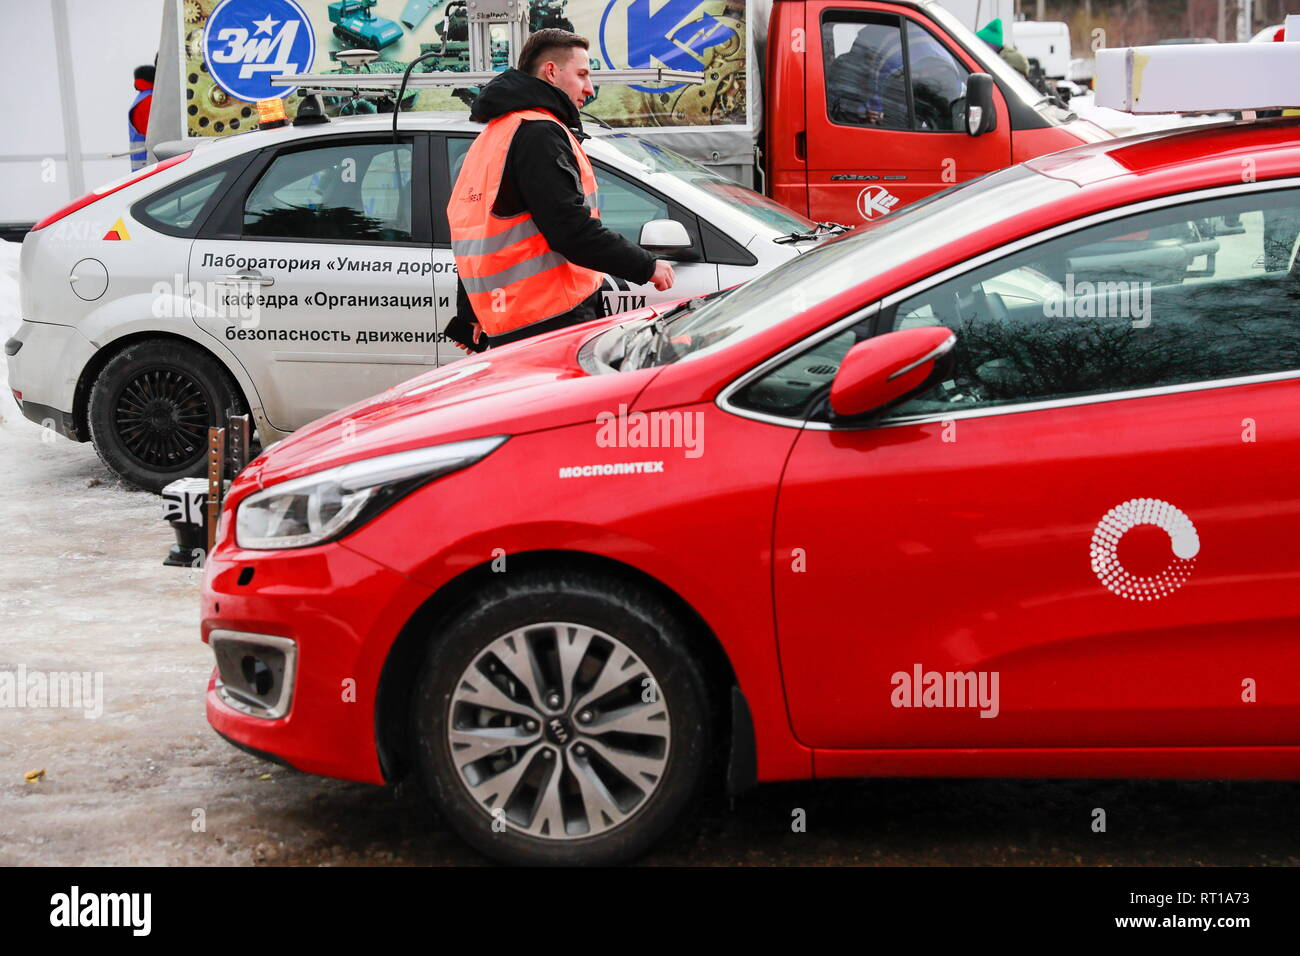 Russia. 27th Feb, 2019. MOSCOW REGION, RUSSIA - FEBRUARY 27, 2019: A self-driving car of the Laboratory of Driverless Transport being tested in extreme climate conditions as part of the Winter City Up Great International Technology Contest at a facility of the Central Scientific Research Automobile and Automotive Engines Institute (NAMI) in the village of Avtopoligon. Sergei Fadeichev/TASS Credit: ITAR-TASS News Agency/Alamy Live News Stock Photo